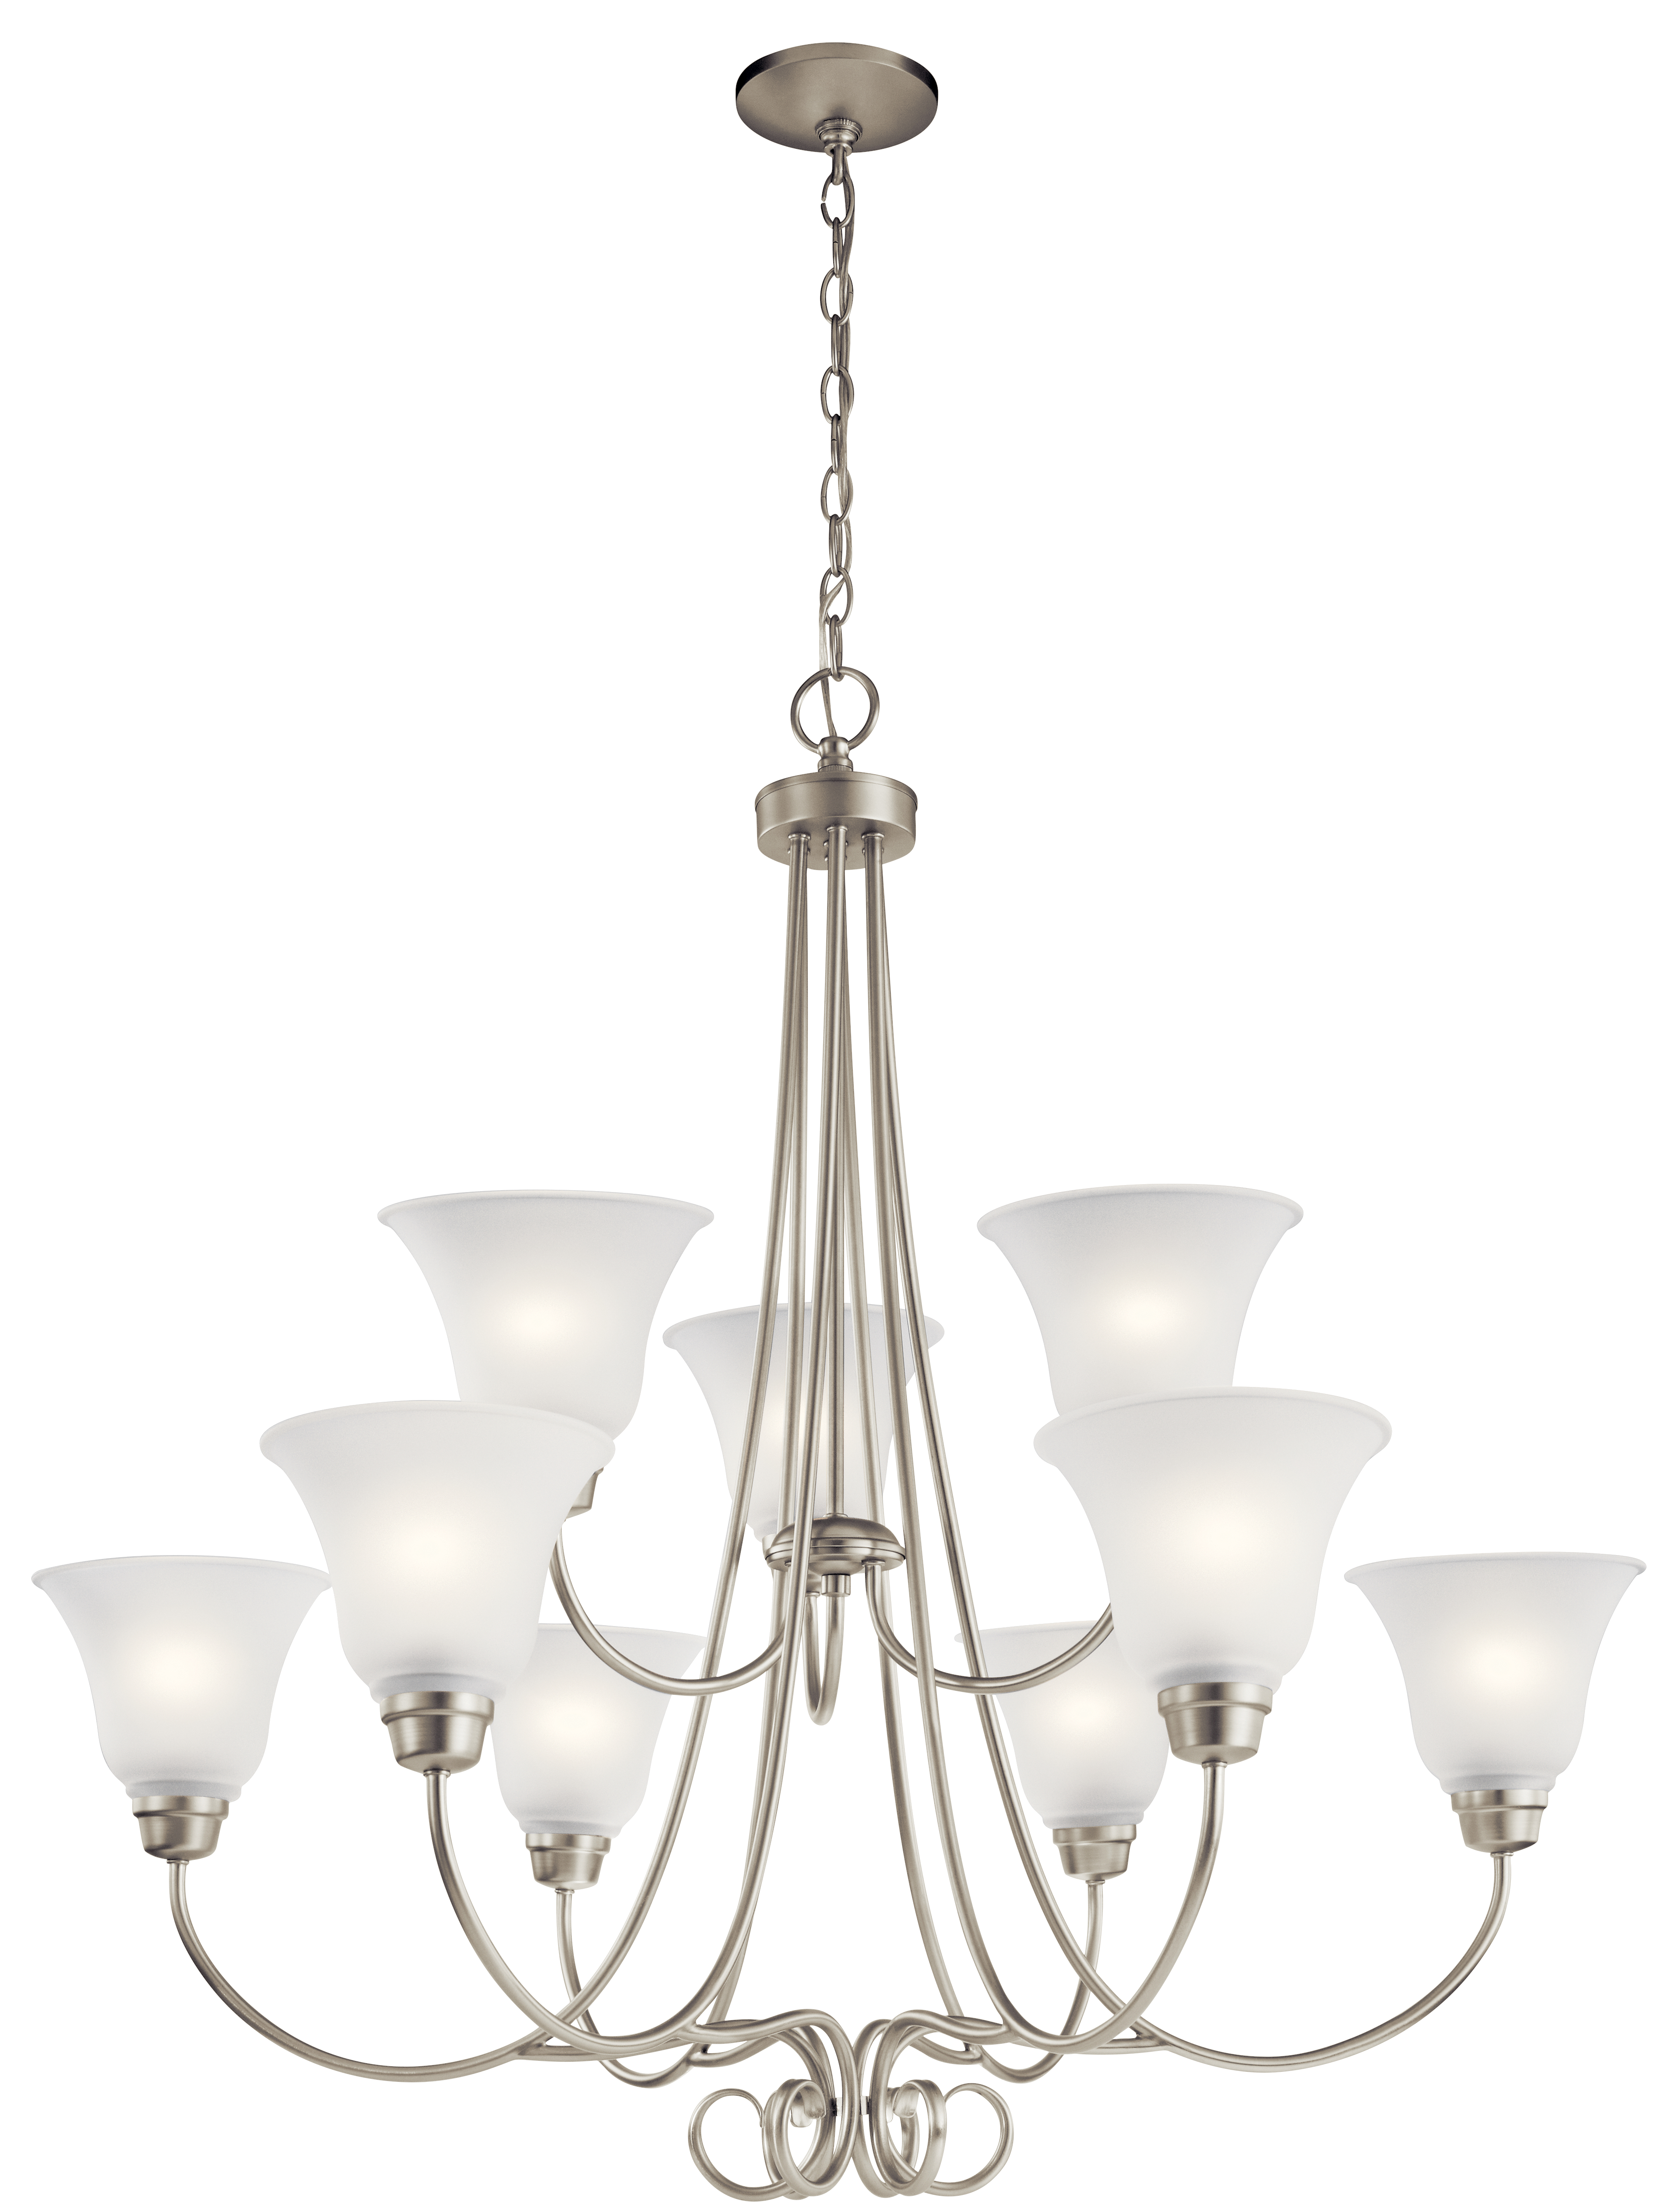 Kichler Bixler LED Chandelier with Satin Etched Shade - Brushed Nickel (43939NIL16)